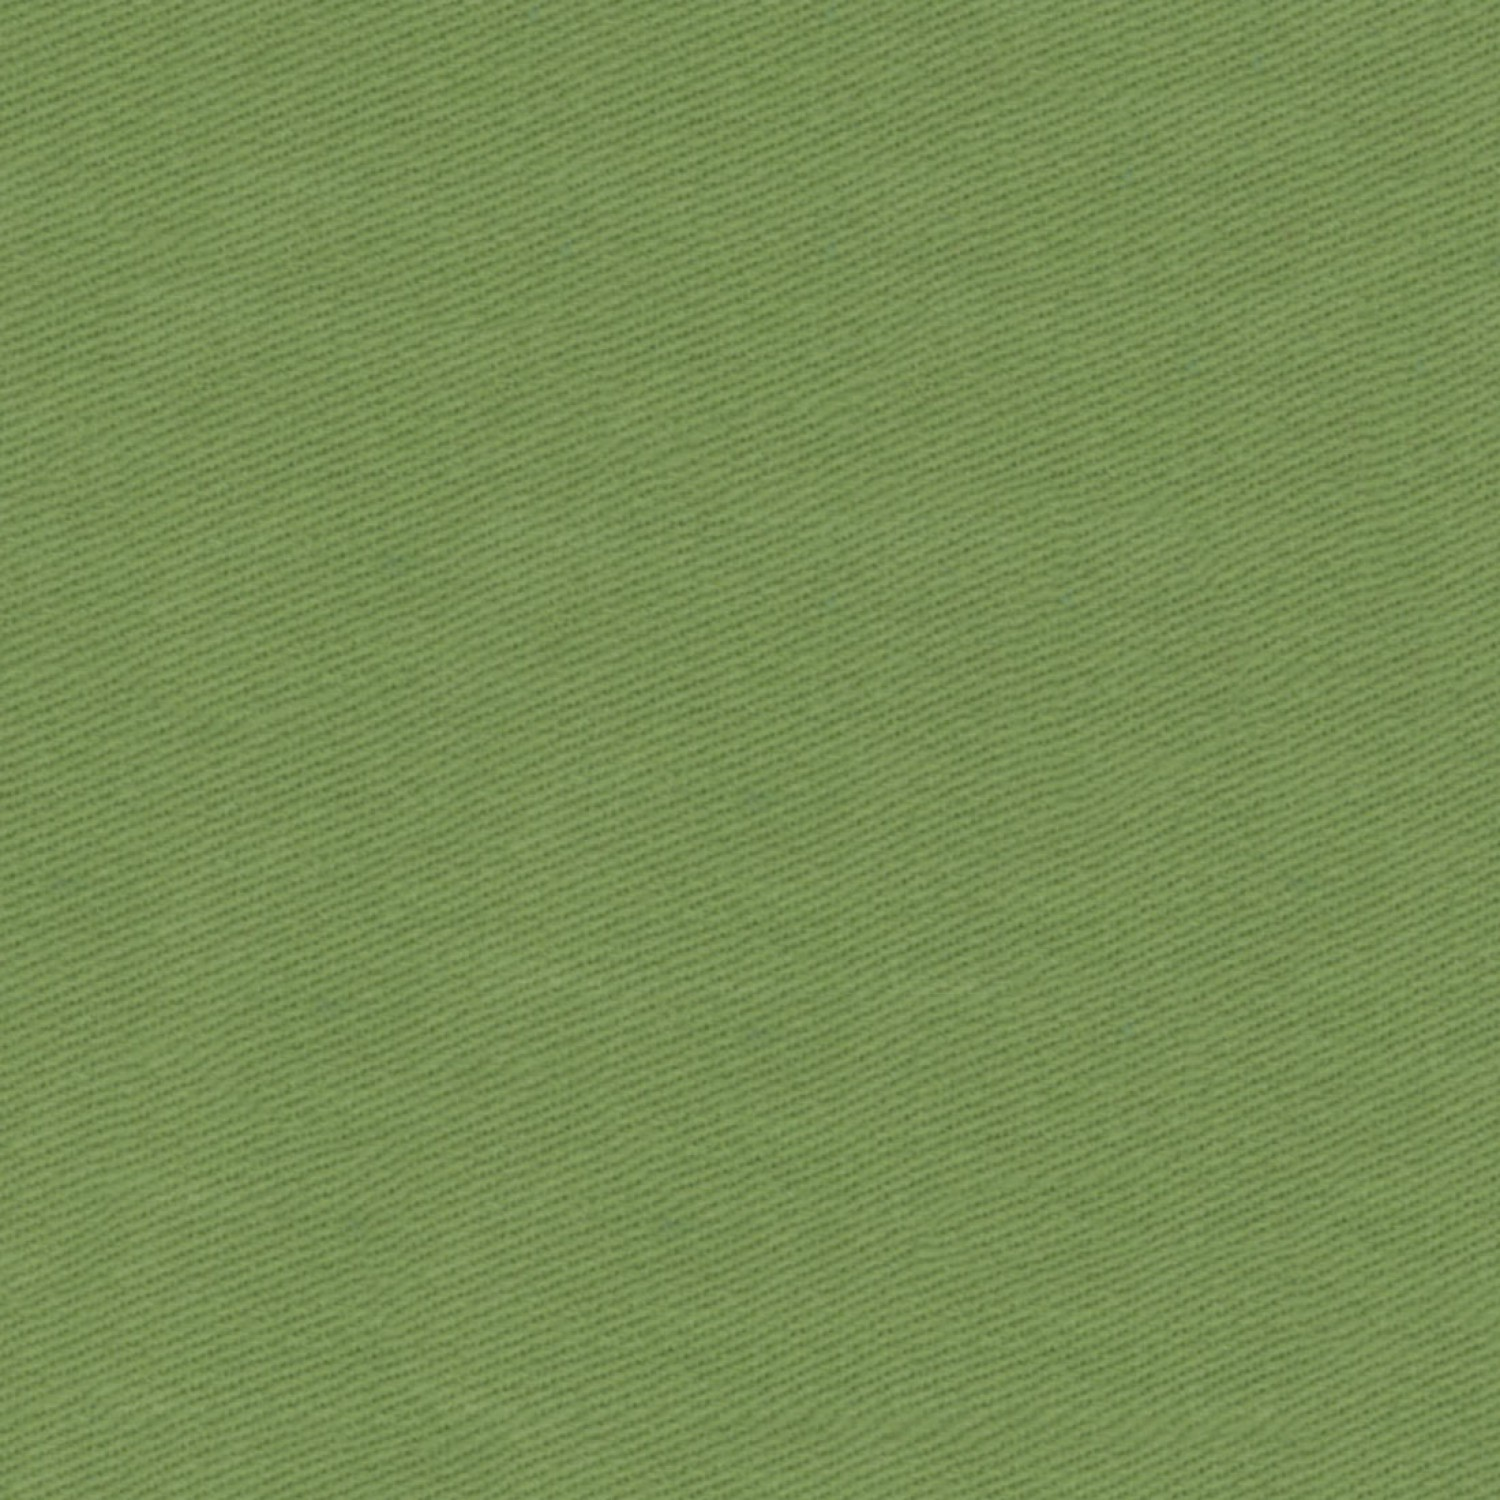 "Milestone Twill Citronelle Fabric 7oz - 60"" Wide x Per Yard"